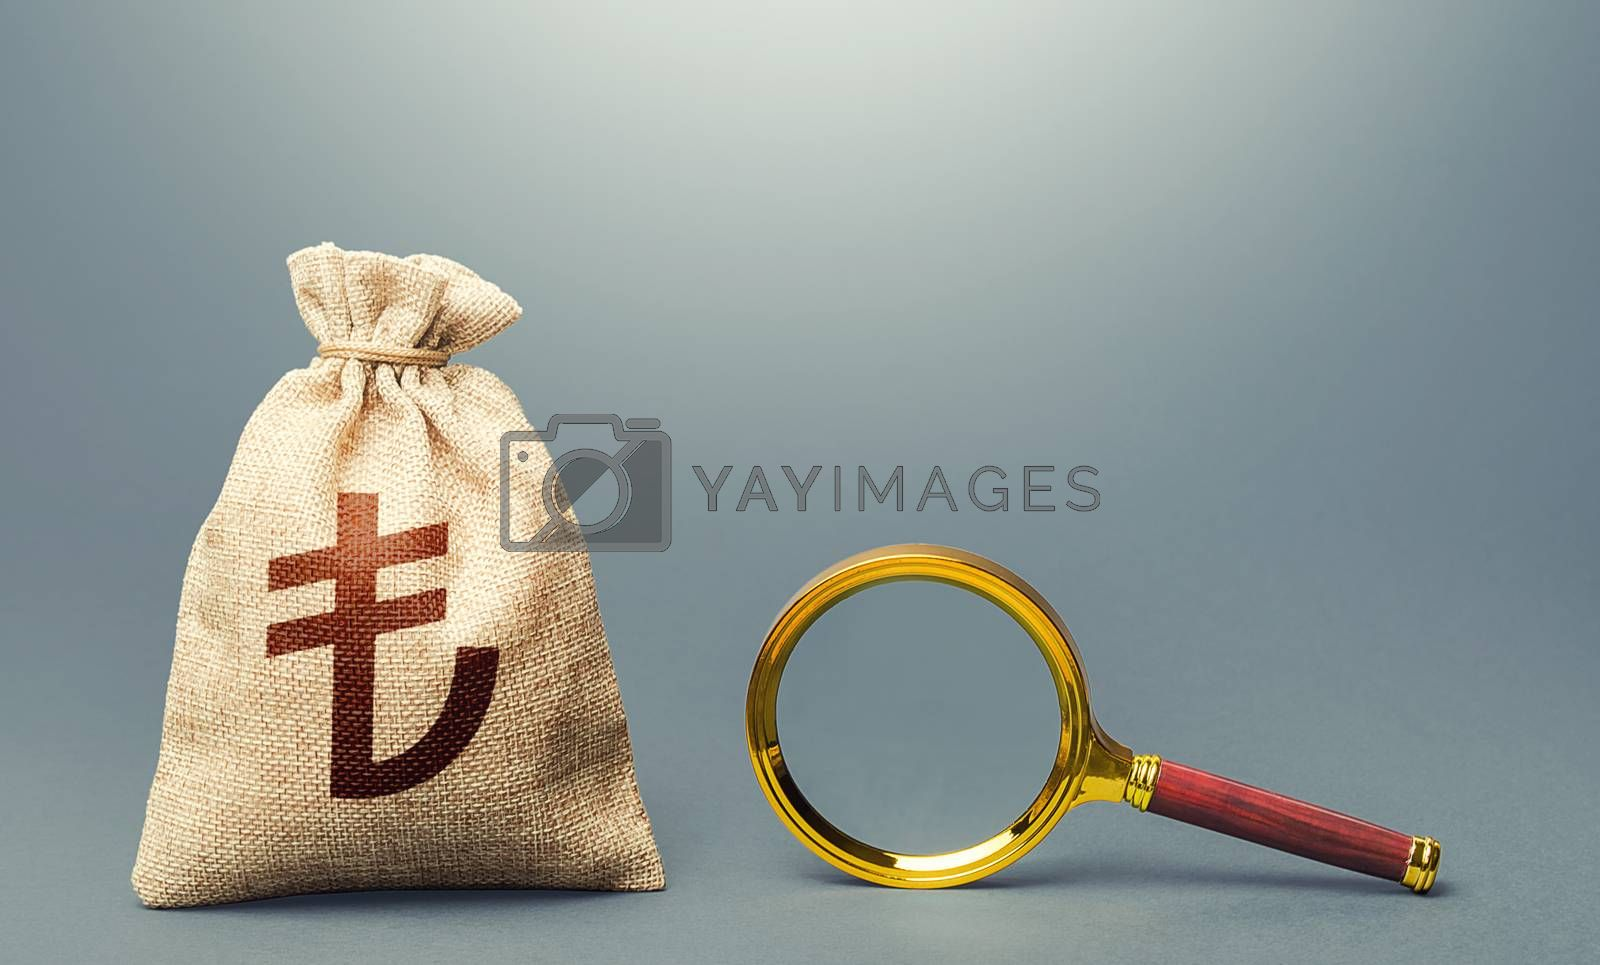 Turkish lira money bag and magnifying glass. Find high-paying job. Most favorable conditions for deposits, loans. Search for financing. Financial audit. Origin of capital and legality of funds.